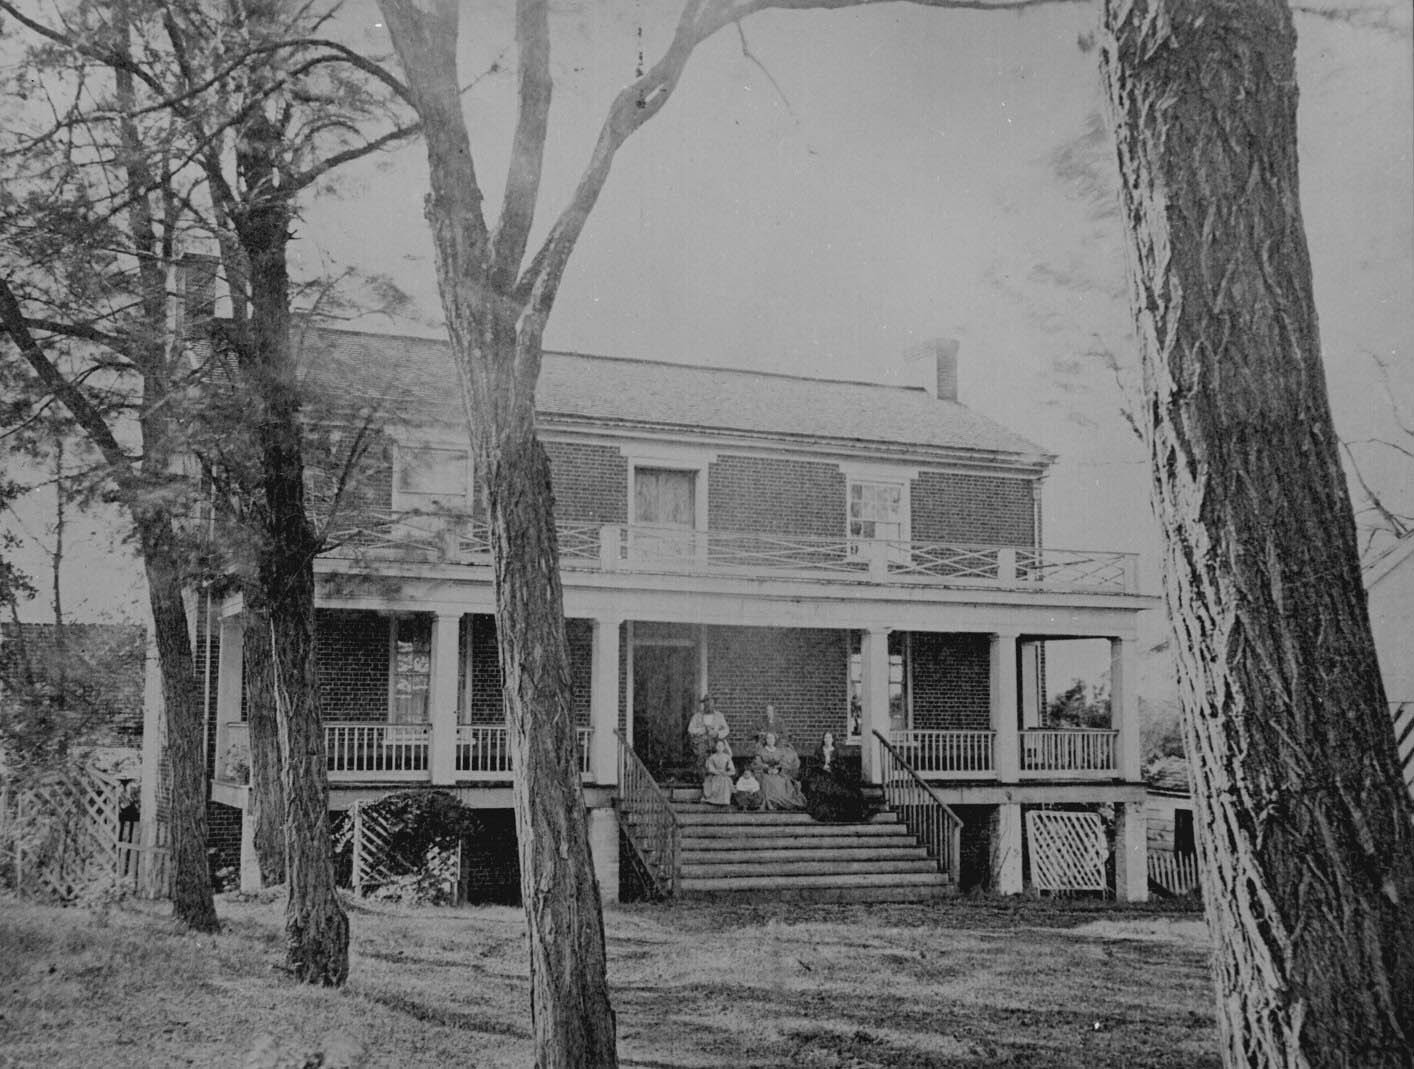 McLean house where General Lee surrendered. Appomattox Court House, Va., April 1865. Photographed by Timothy H. O'Sullivan.